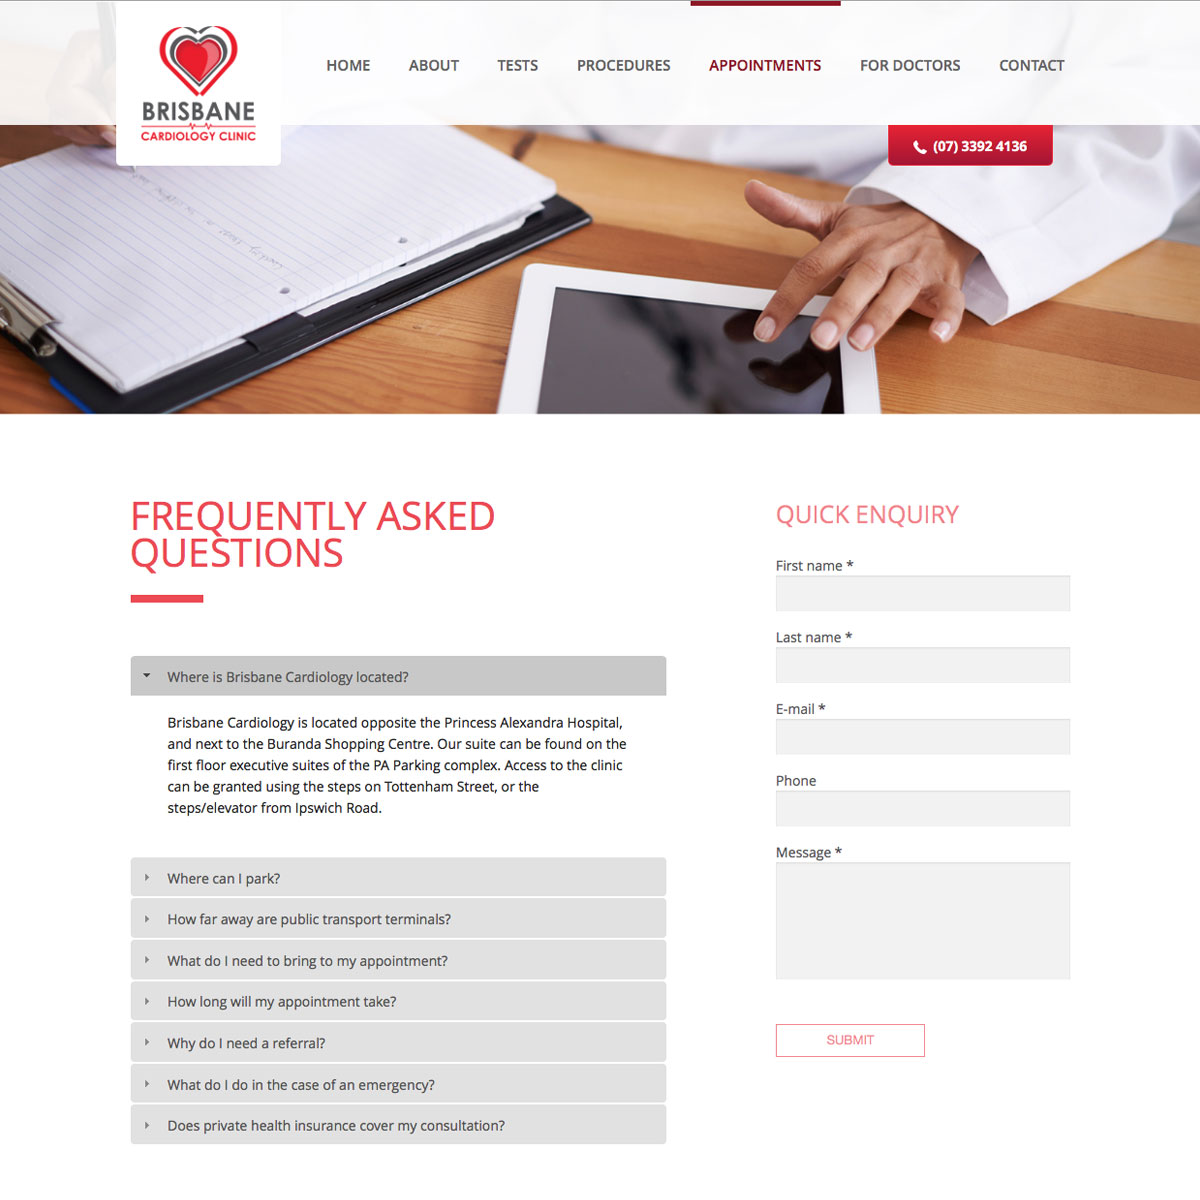 Brisbane Cardiology Clinic FAQ's